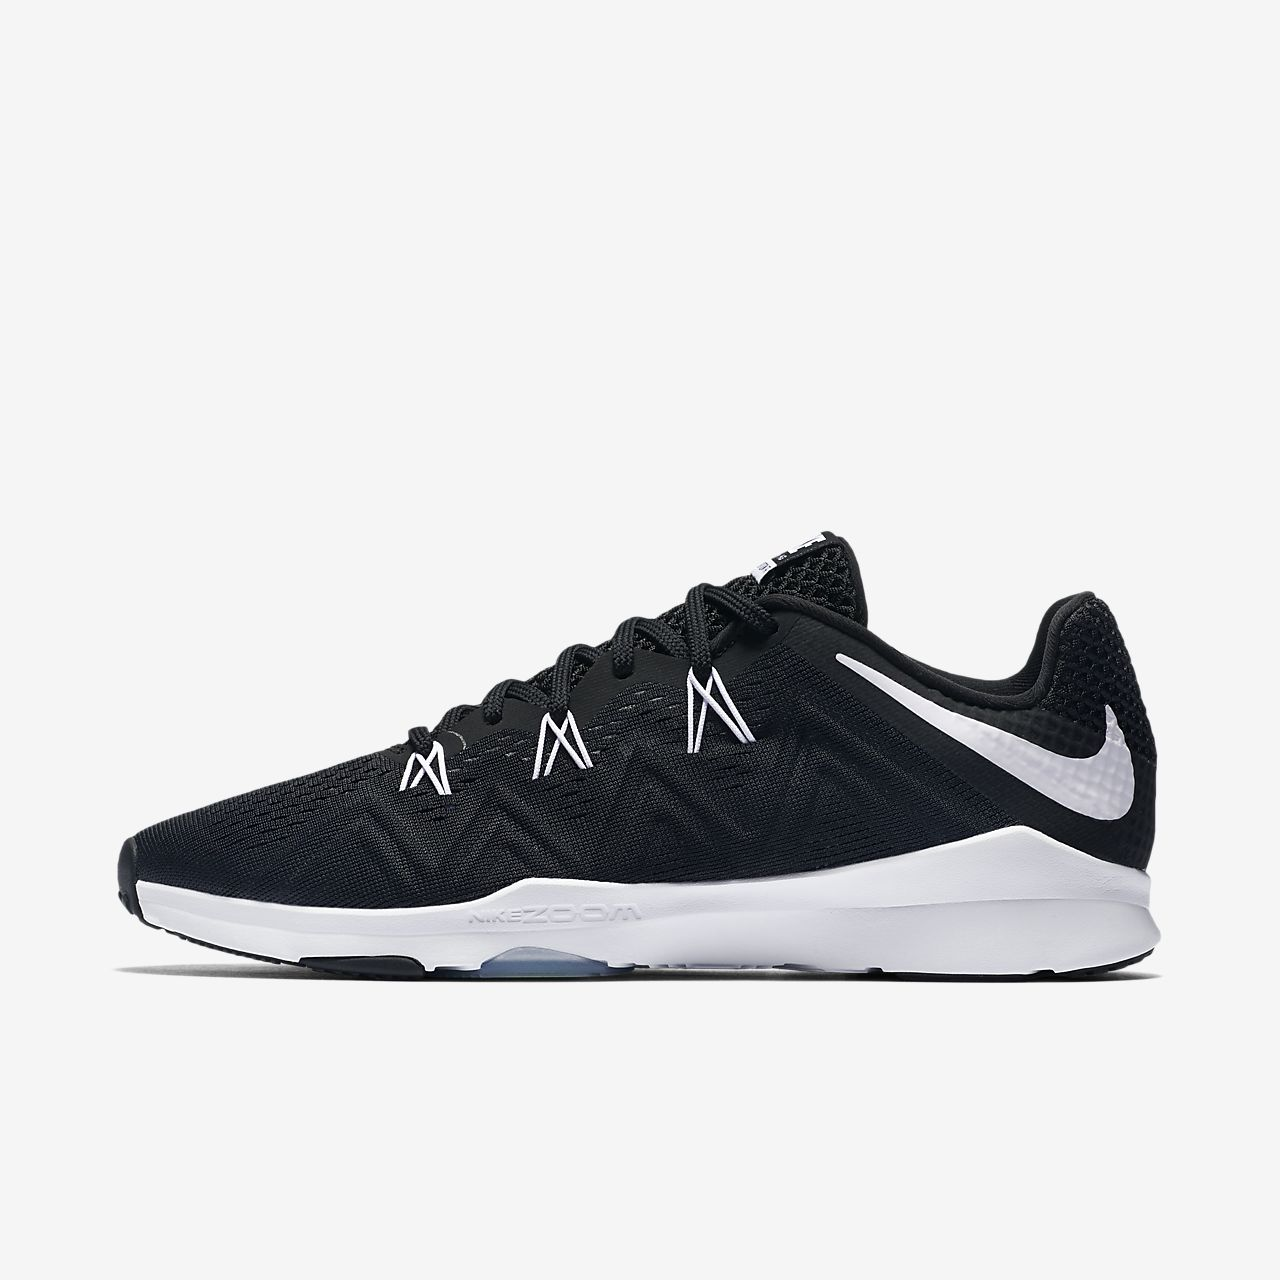 ... Nike Air Zoom Condition Women's Training Shoe